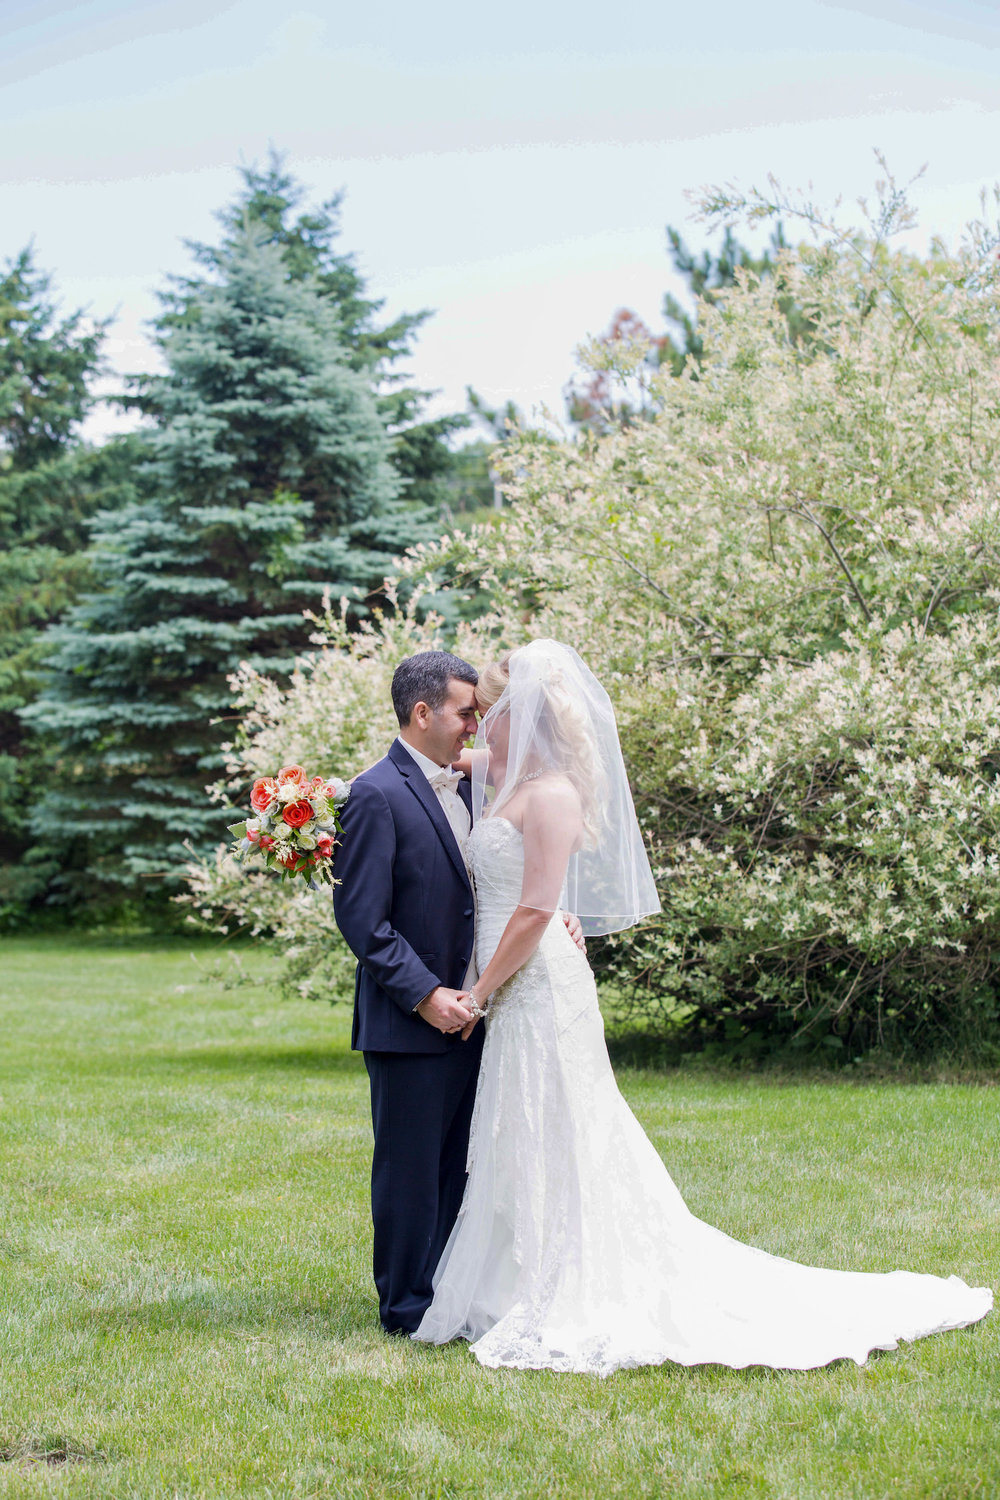 Cindyrellas Garden, outdoor lake ceremony in Minnesota, gorgeous tree backdrop